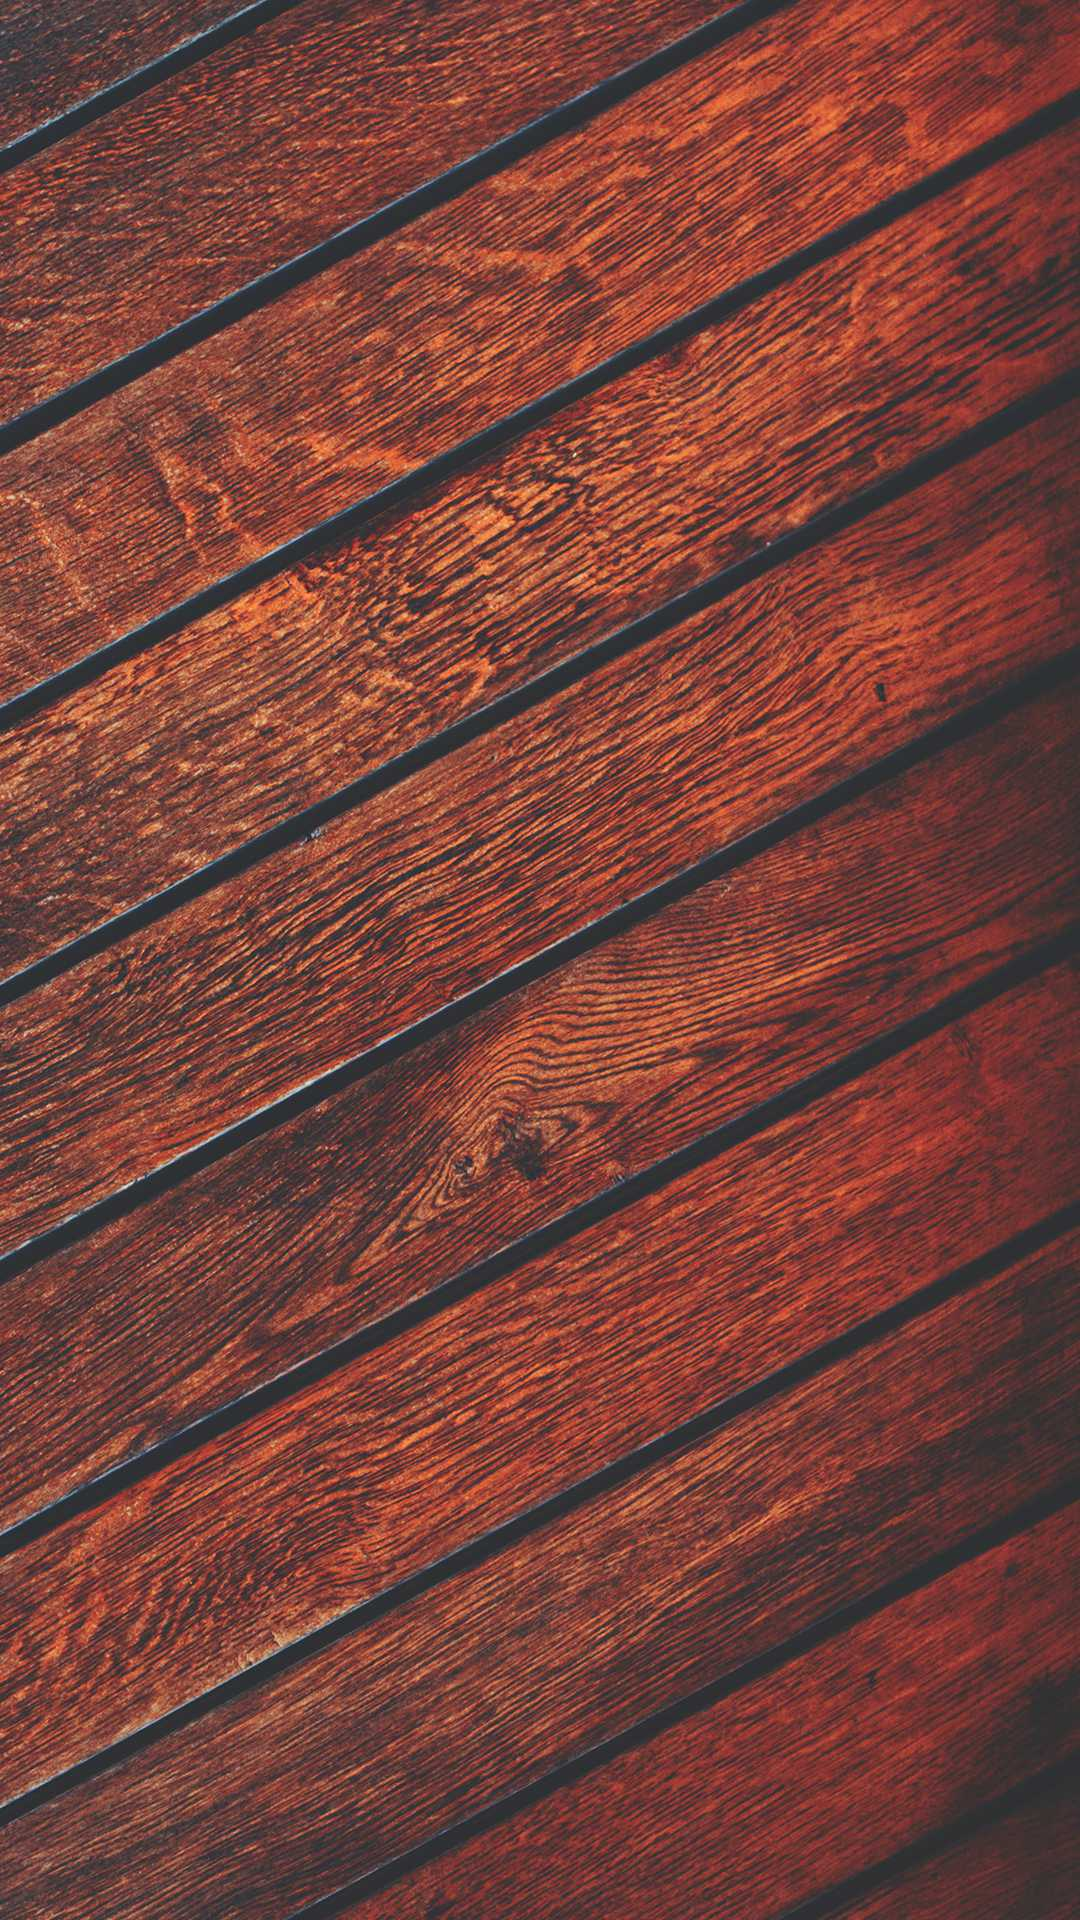 Wooden Background iPhone Wallpaper